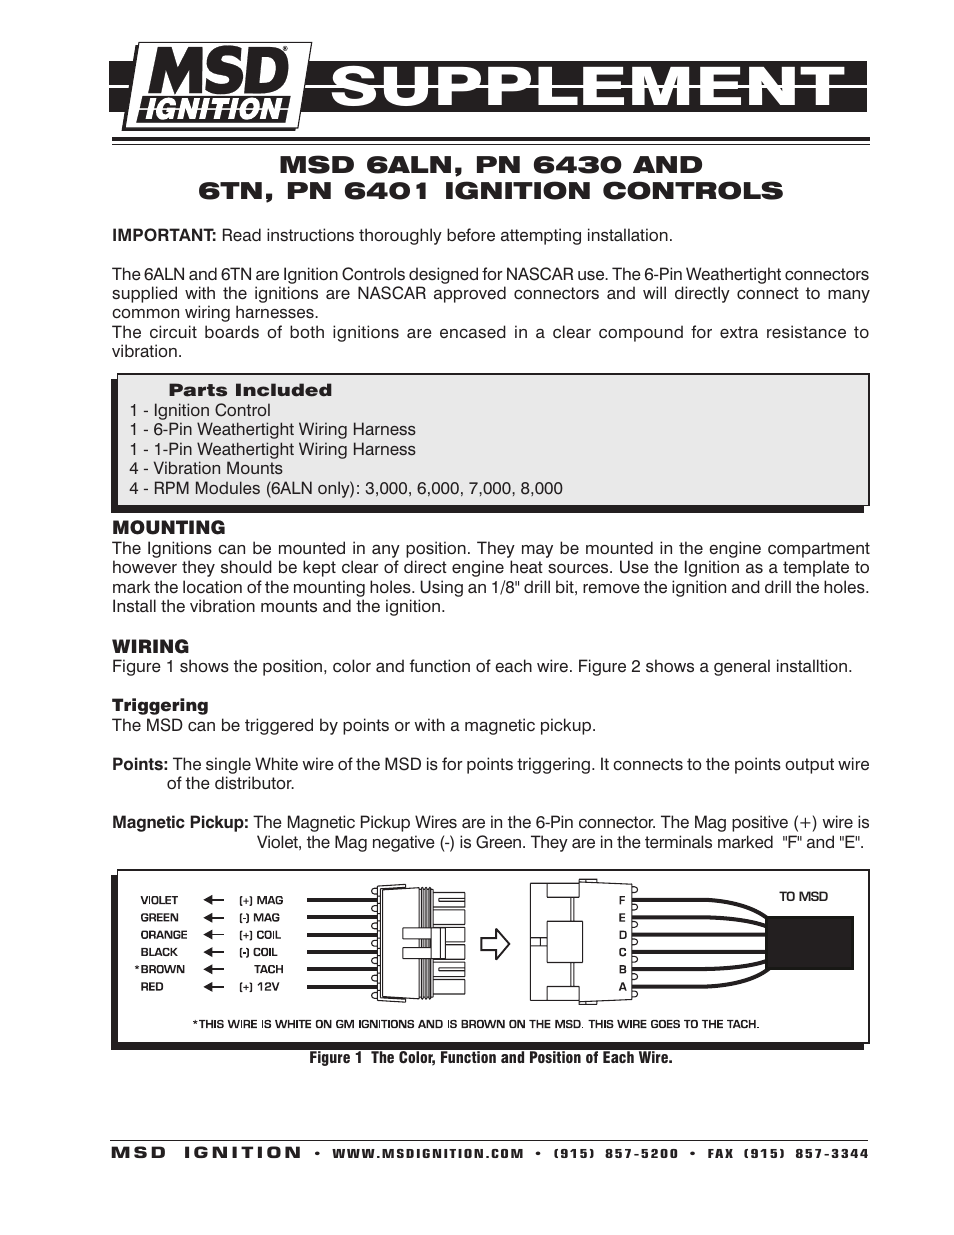 msd 6430 6aln ignition control supplement page1 tg66m3170c00 wiring diagram,m \u2022 indy500 co  at sewacar.co